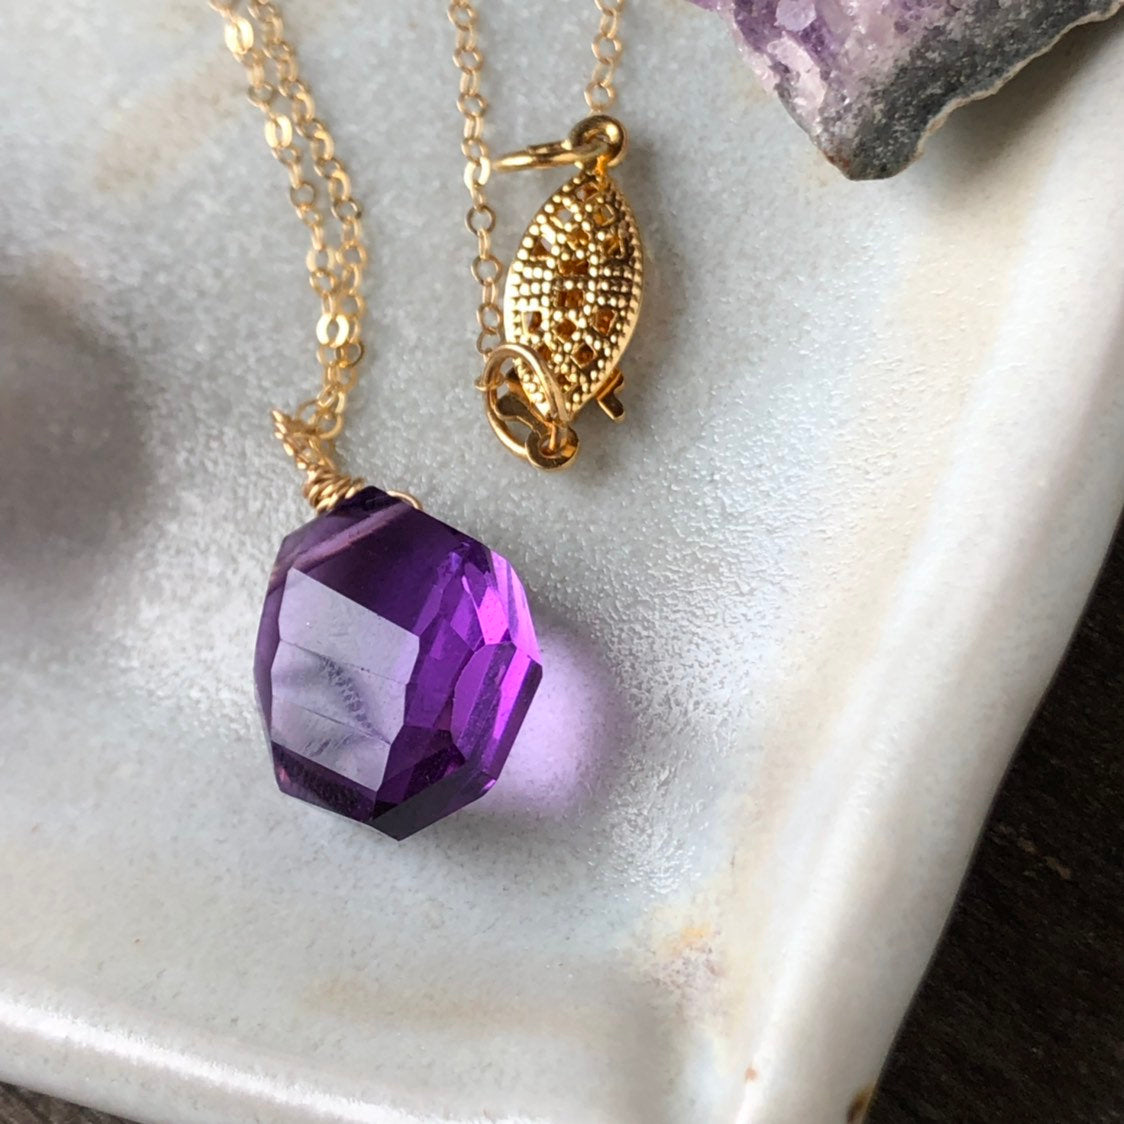 Amethyst Gold Necklace / Faceted Amethyst / Brazilian Amethyst Pendant Necklace / Natural Purple Crystal / 14k Gold Filled Chain